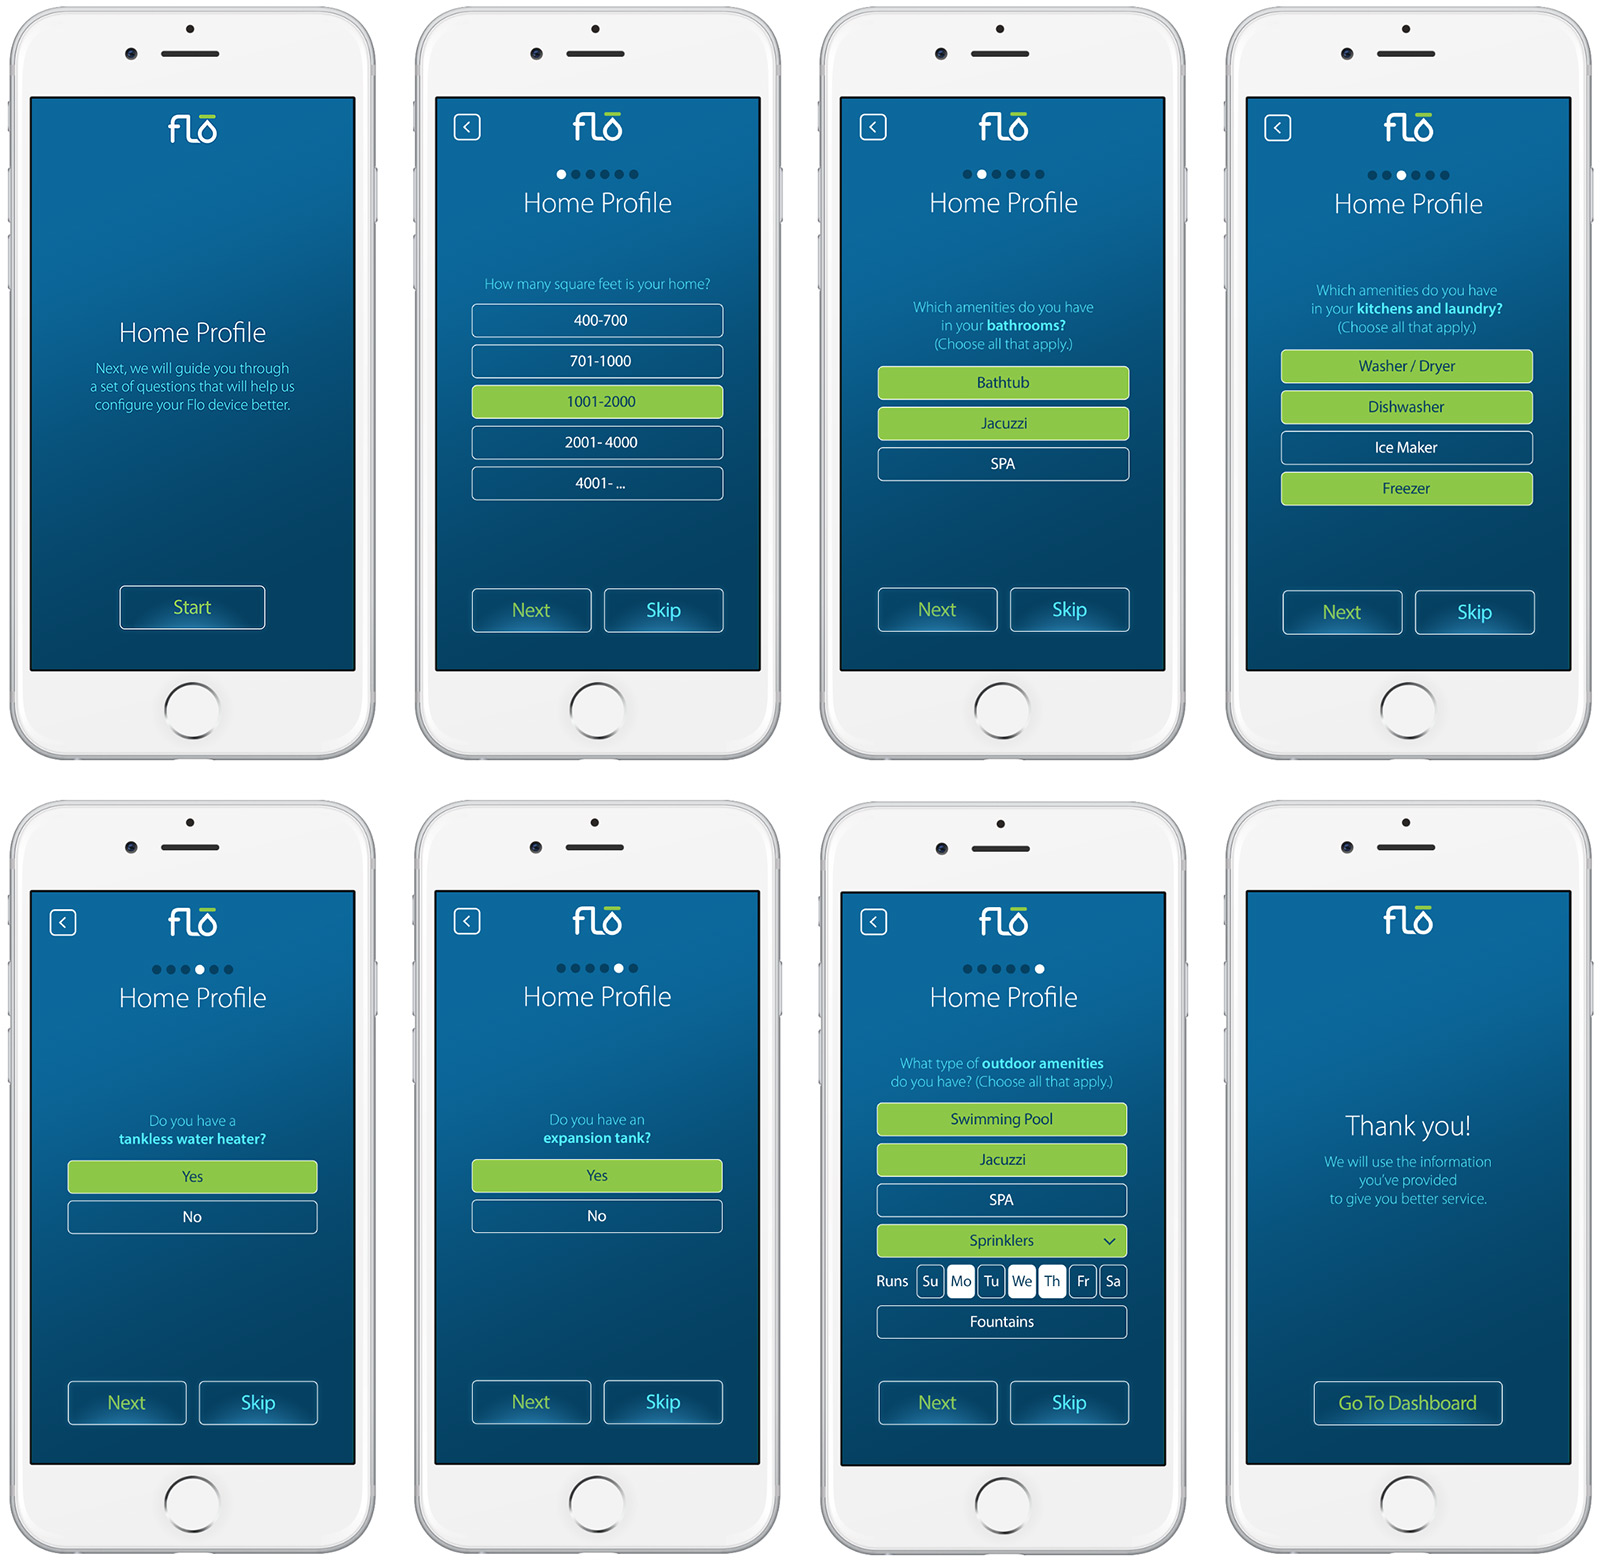 The Flo mobile app has many other screens, from installation steps to technical support.